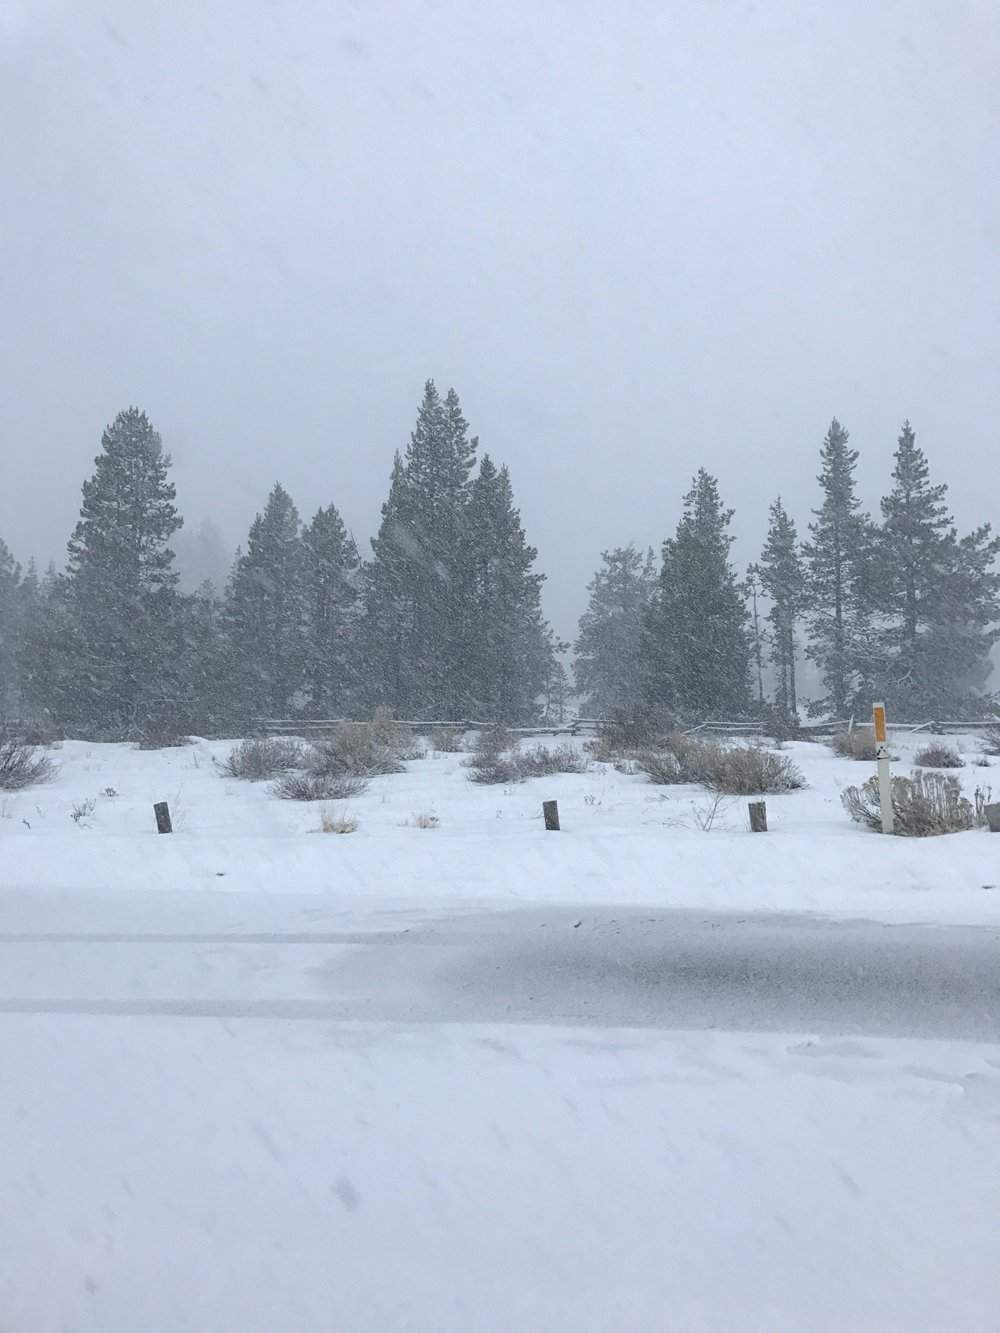 lake tahoe travel guide, south lake tahoe, what to do in lake tahoe, visit california,  puffer jacket, lake tahoe snow